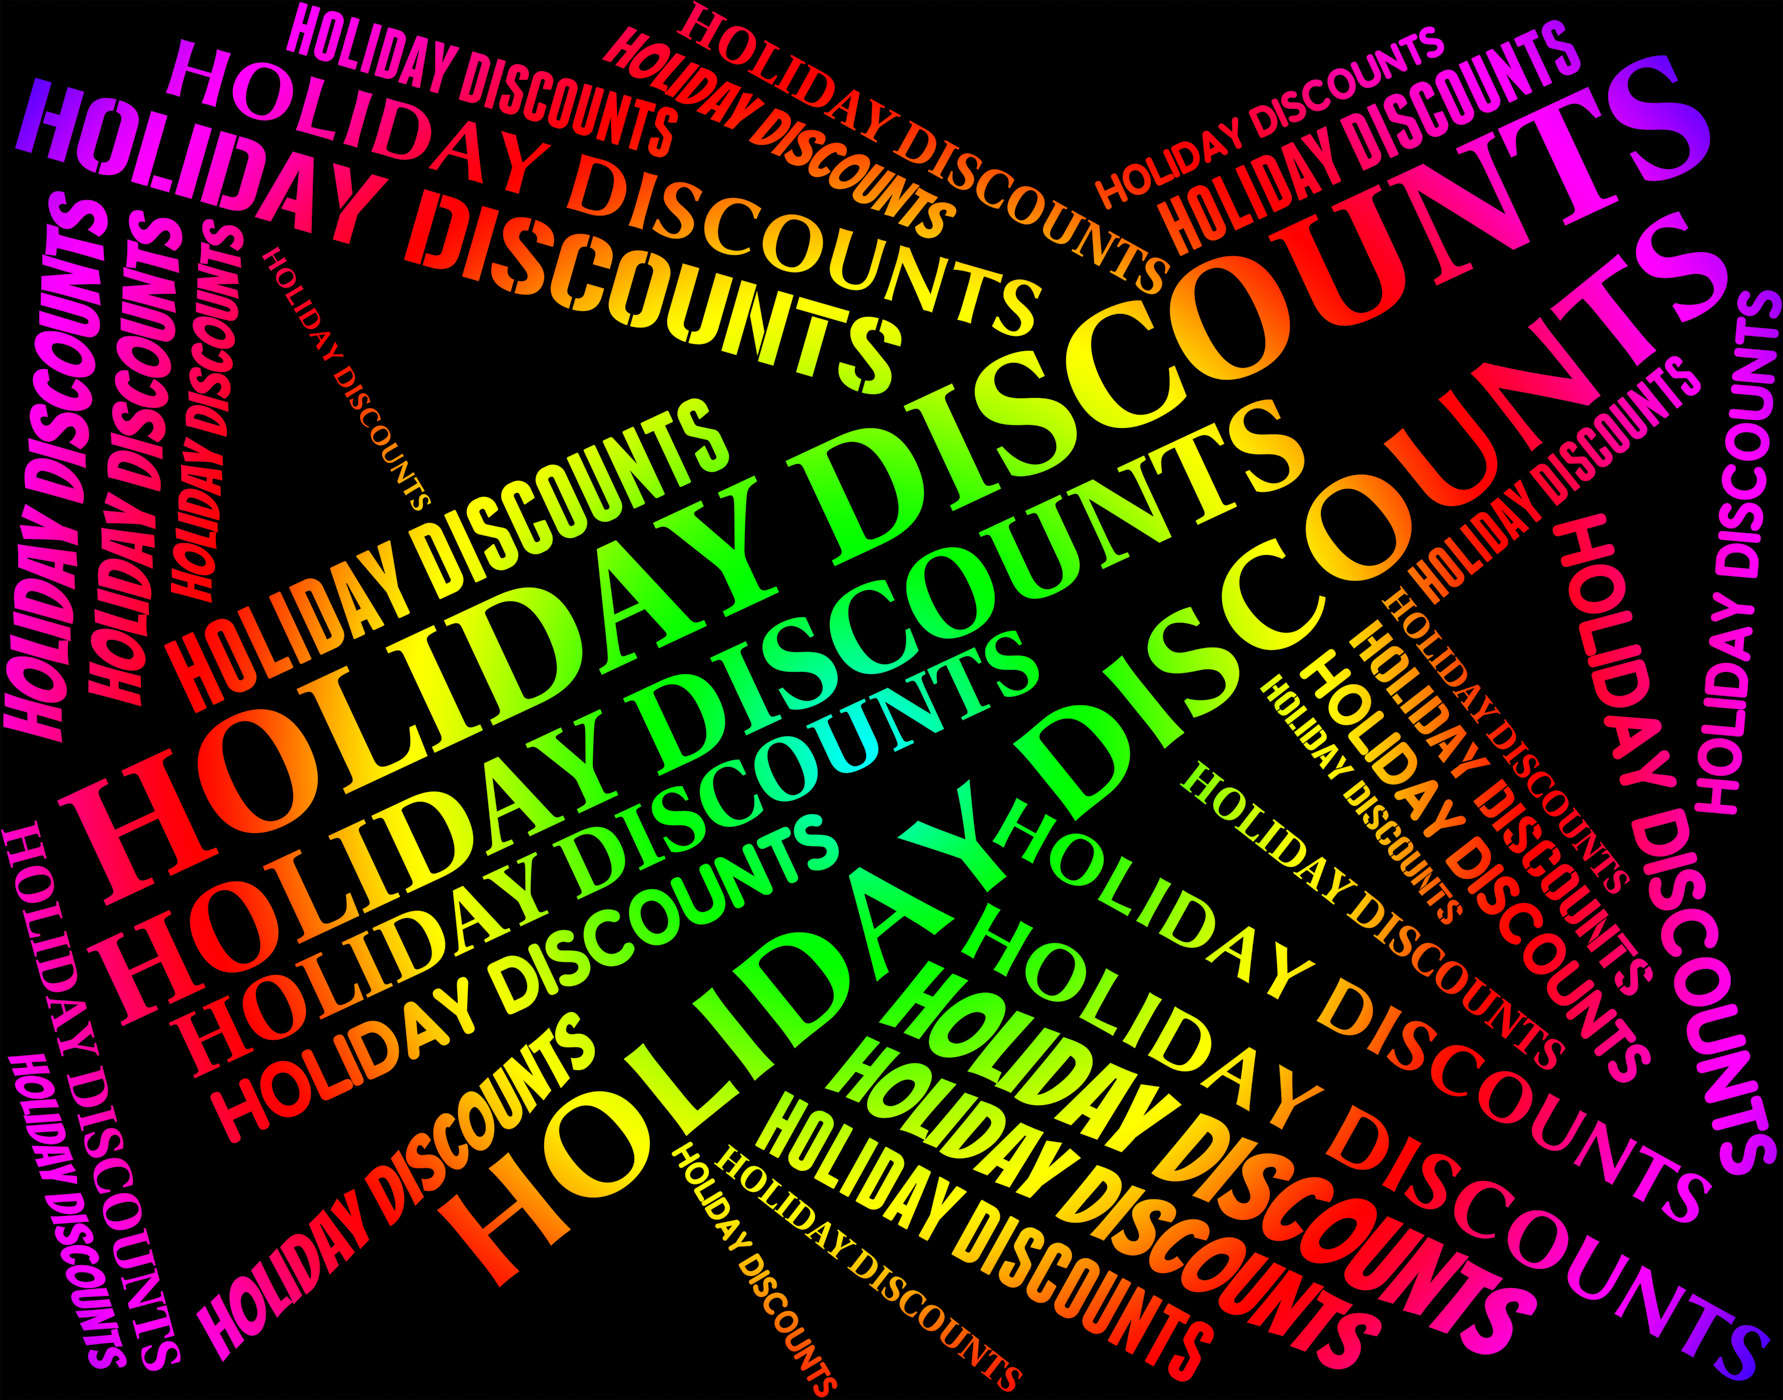 Holiday Discounts Means Go On Leave And Bargain, Bargain, Reduction, Word, Vacations, HQ Photo